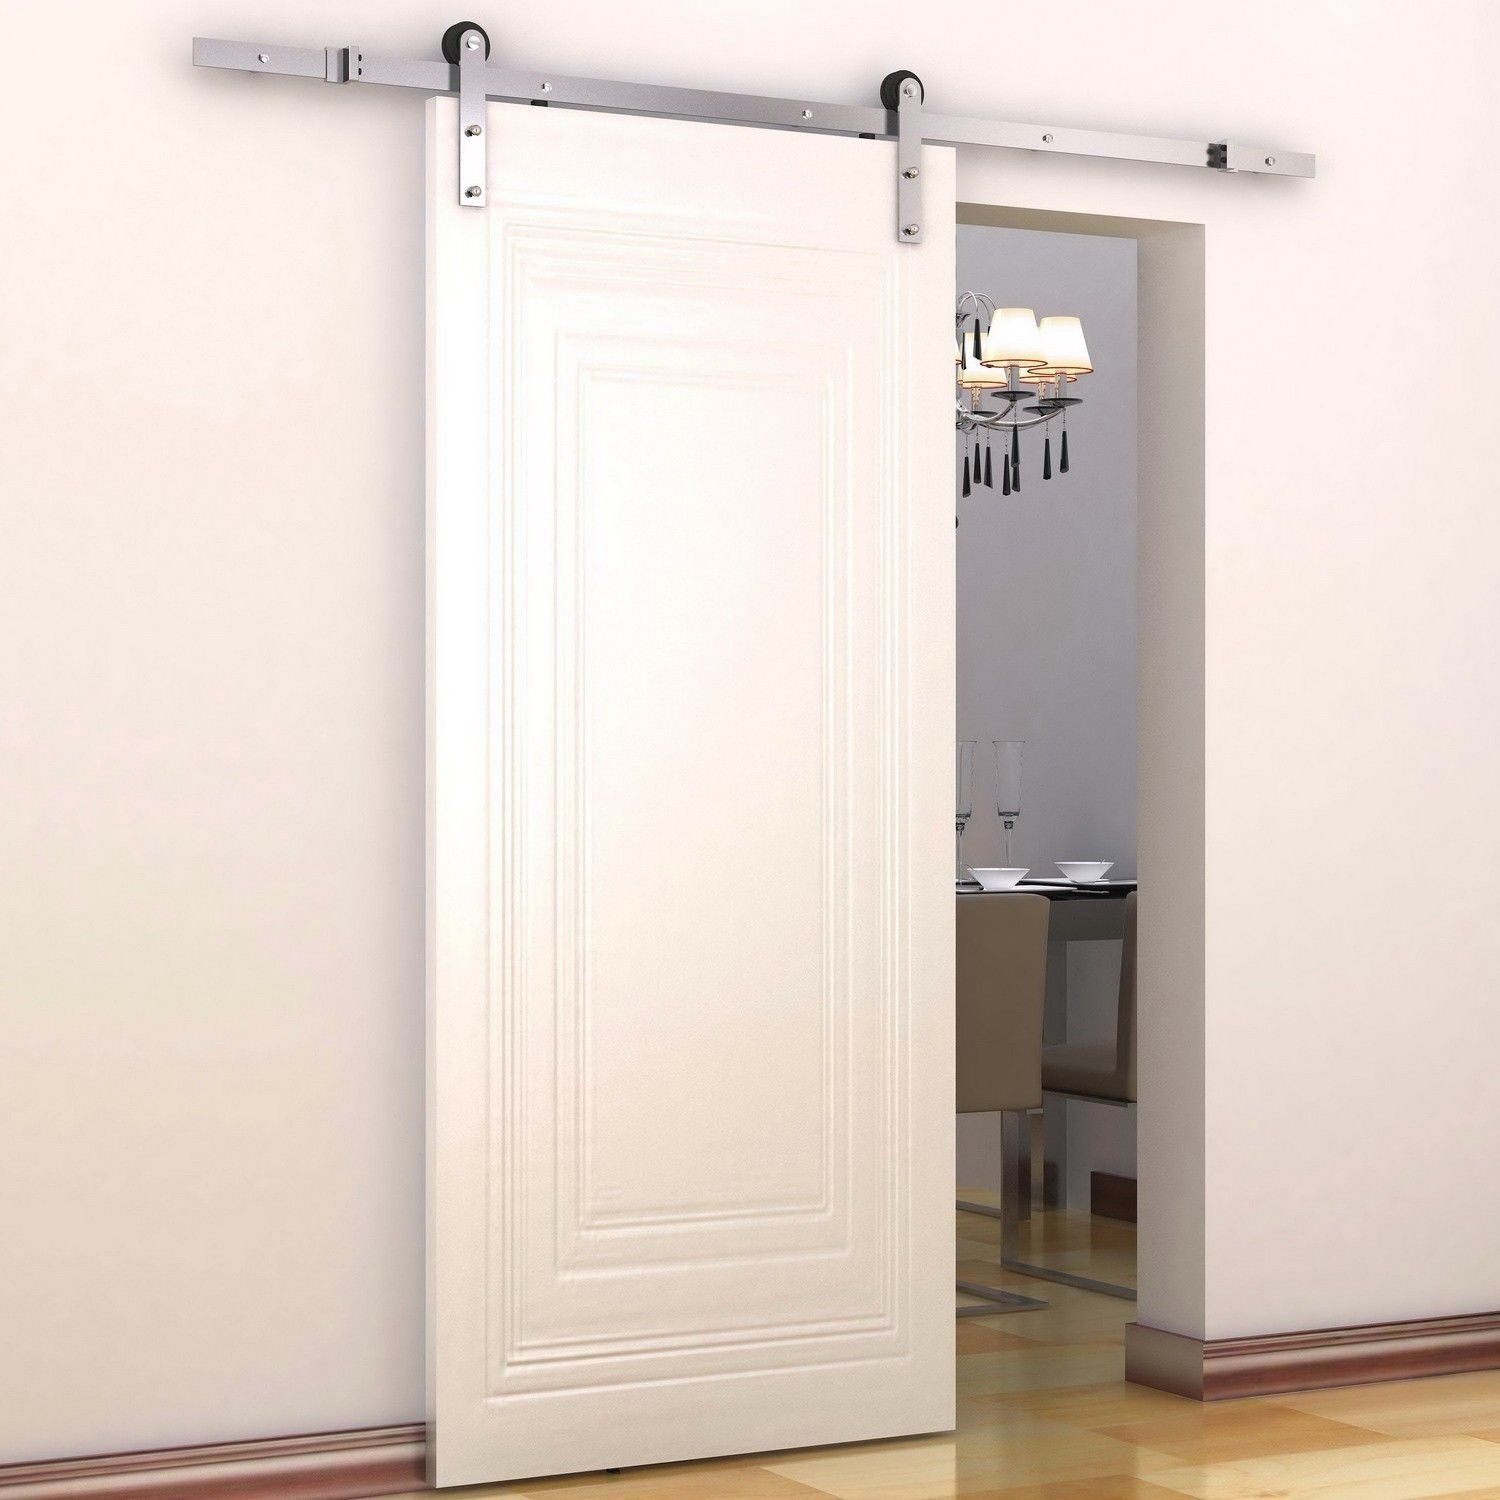 Homcom modern sliding barn door closet hardware track kit track homcom modern sliding barn door closet hardware track kit track system unit for single wooden door vtopaller Image collections